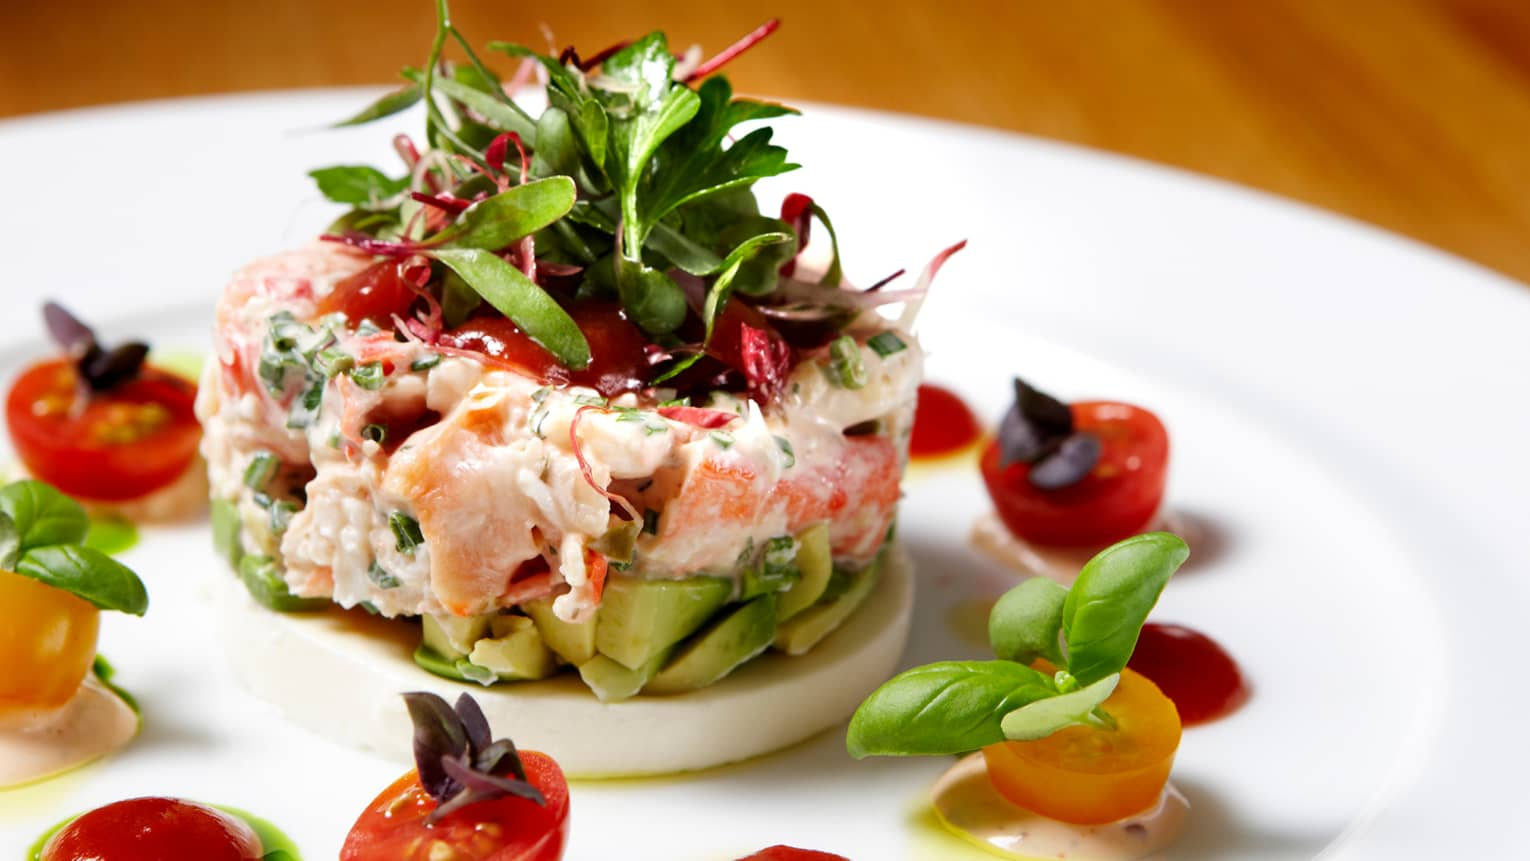 Round Dungeness Crab with chopped avocado, greens garnished with tomatoes, basil